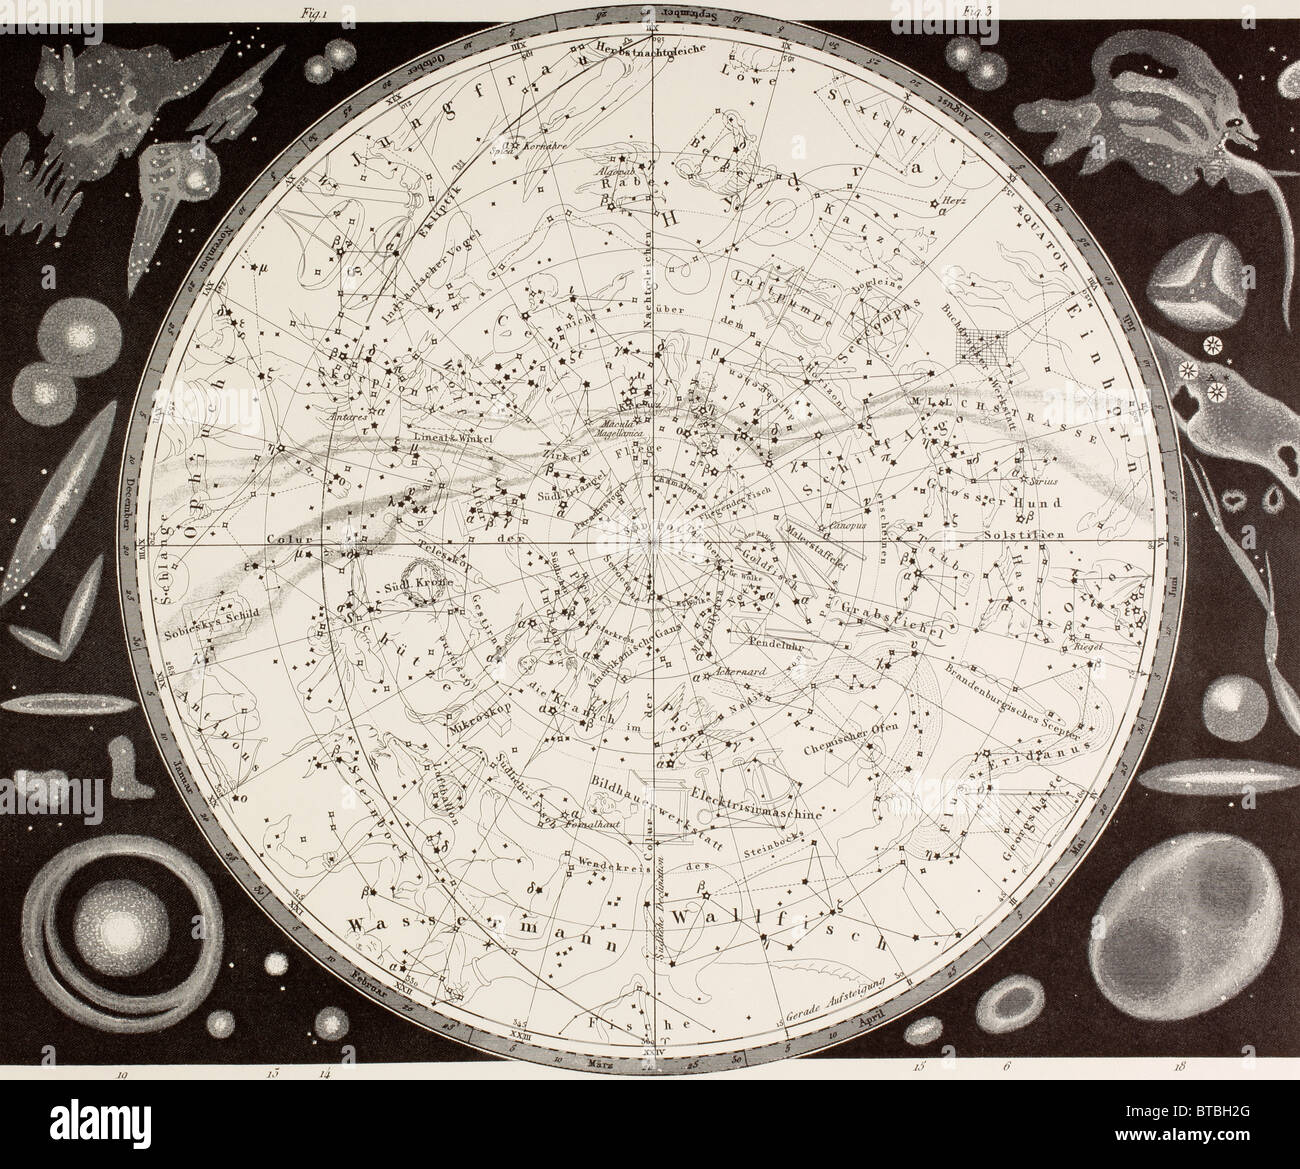 19th century map of the Southern Heavens. - Stock Image